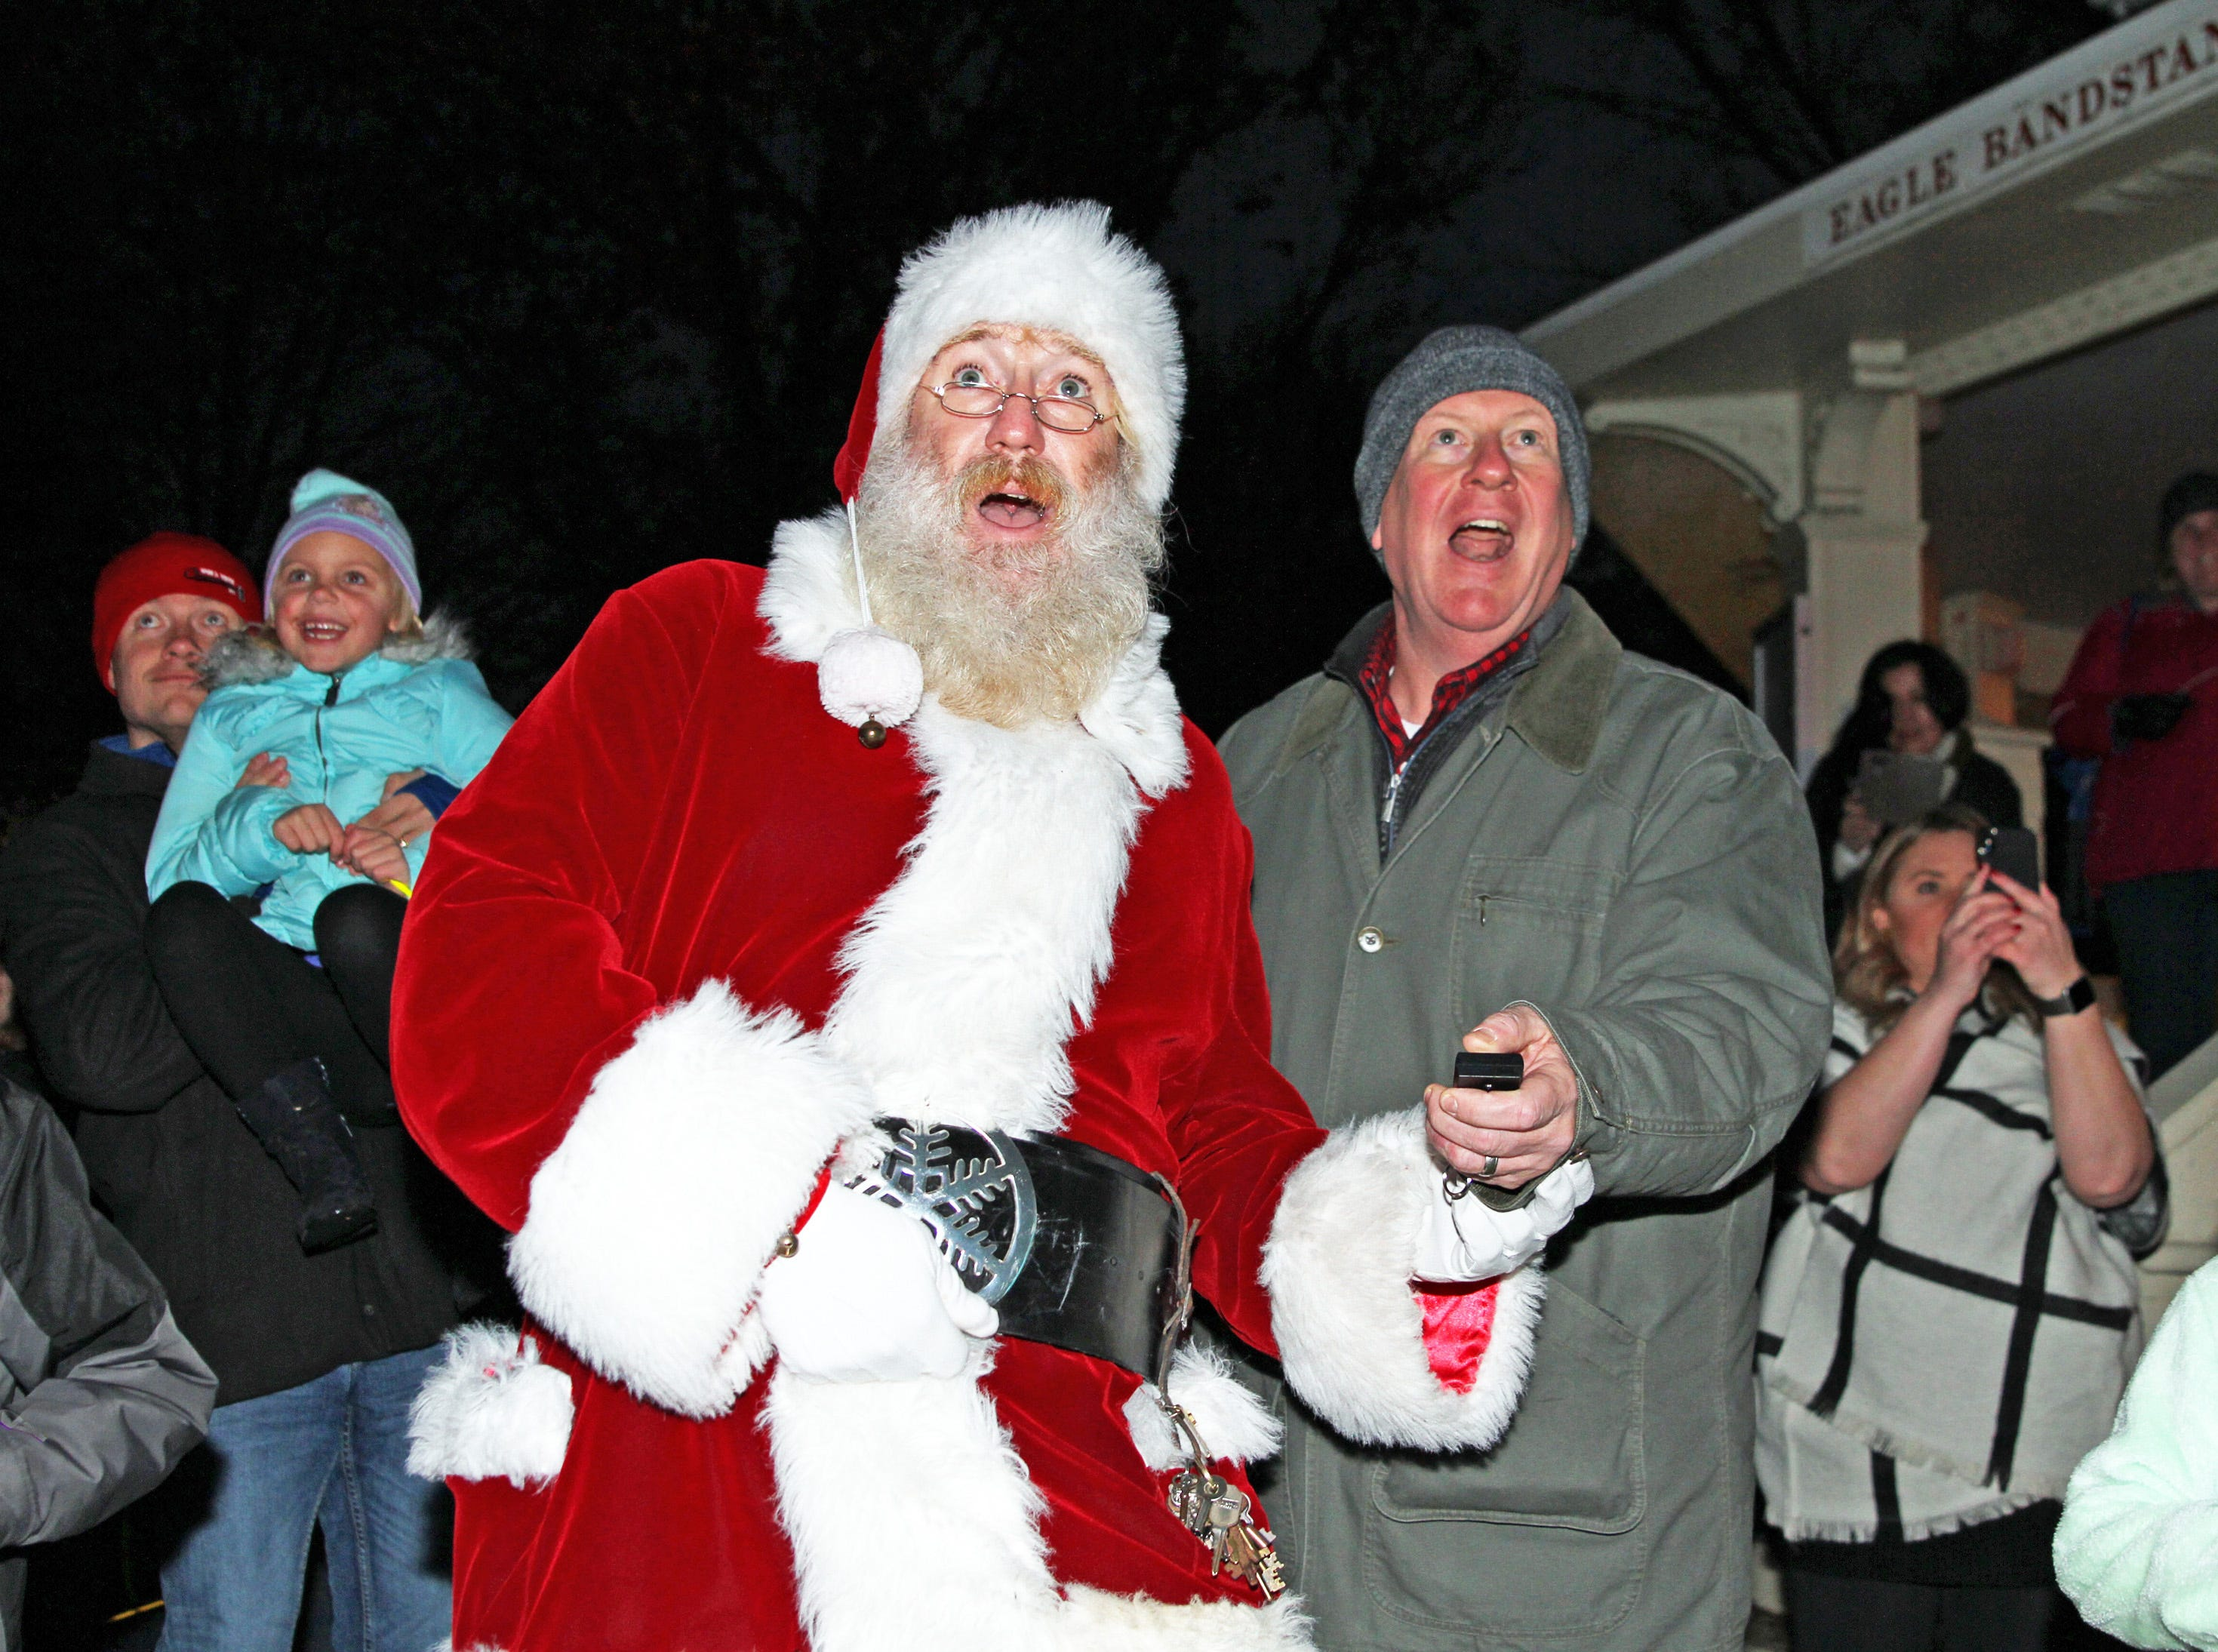 Santa and Urbandale Mayor Bob Andeweg use the remote to light the official tree during UCAN's third annual Light Up Urbandale on Sunday, Dec. 2, 2018 at Lions Park in Urbandale. Holiday festivities included a visit from Santa, crafts, goodies, official tree lighting ceremony, live reindeer and entertainment. This event helps raise awareness and support for the Urbandale Community Action Network Holiday Helping Hands Programs for families, kids, teens and seniors in need.